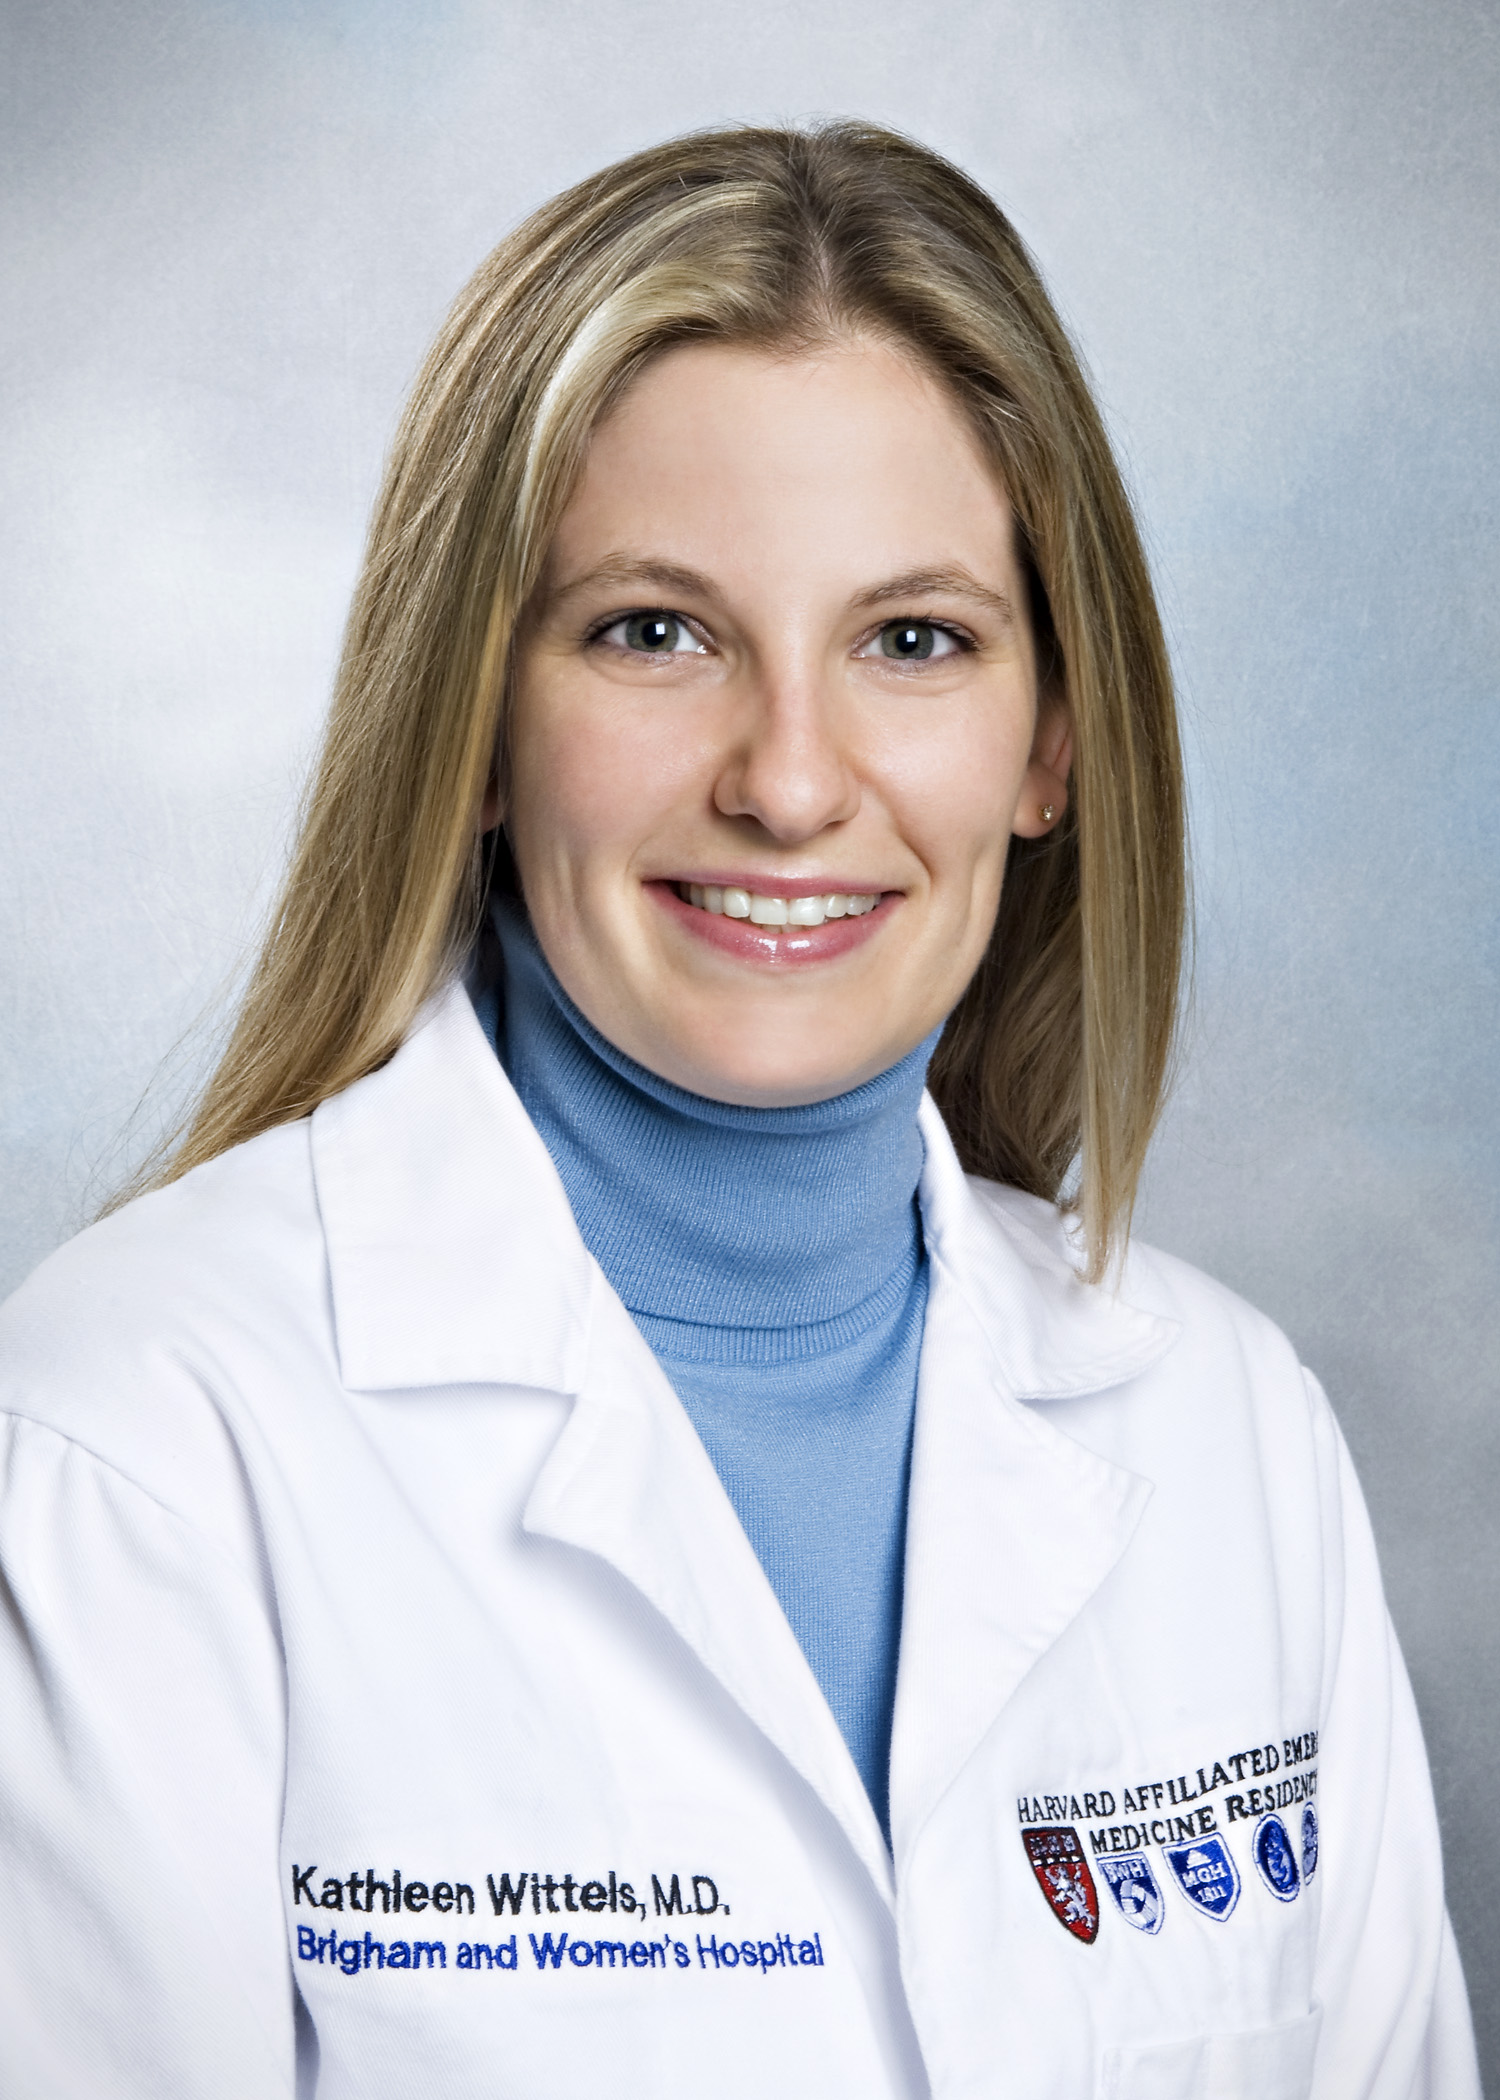 #1 - Discussing Emergency Medicine Morbidity and Mortality Conference and Culture of Safety: The Resident PerspectiveLead Author: Dr. Kathleen WittelsInterviewed by: Dr. Gita Pensa